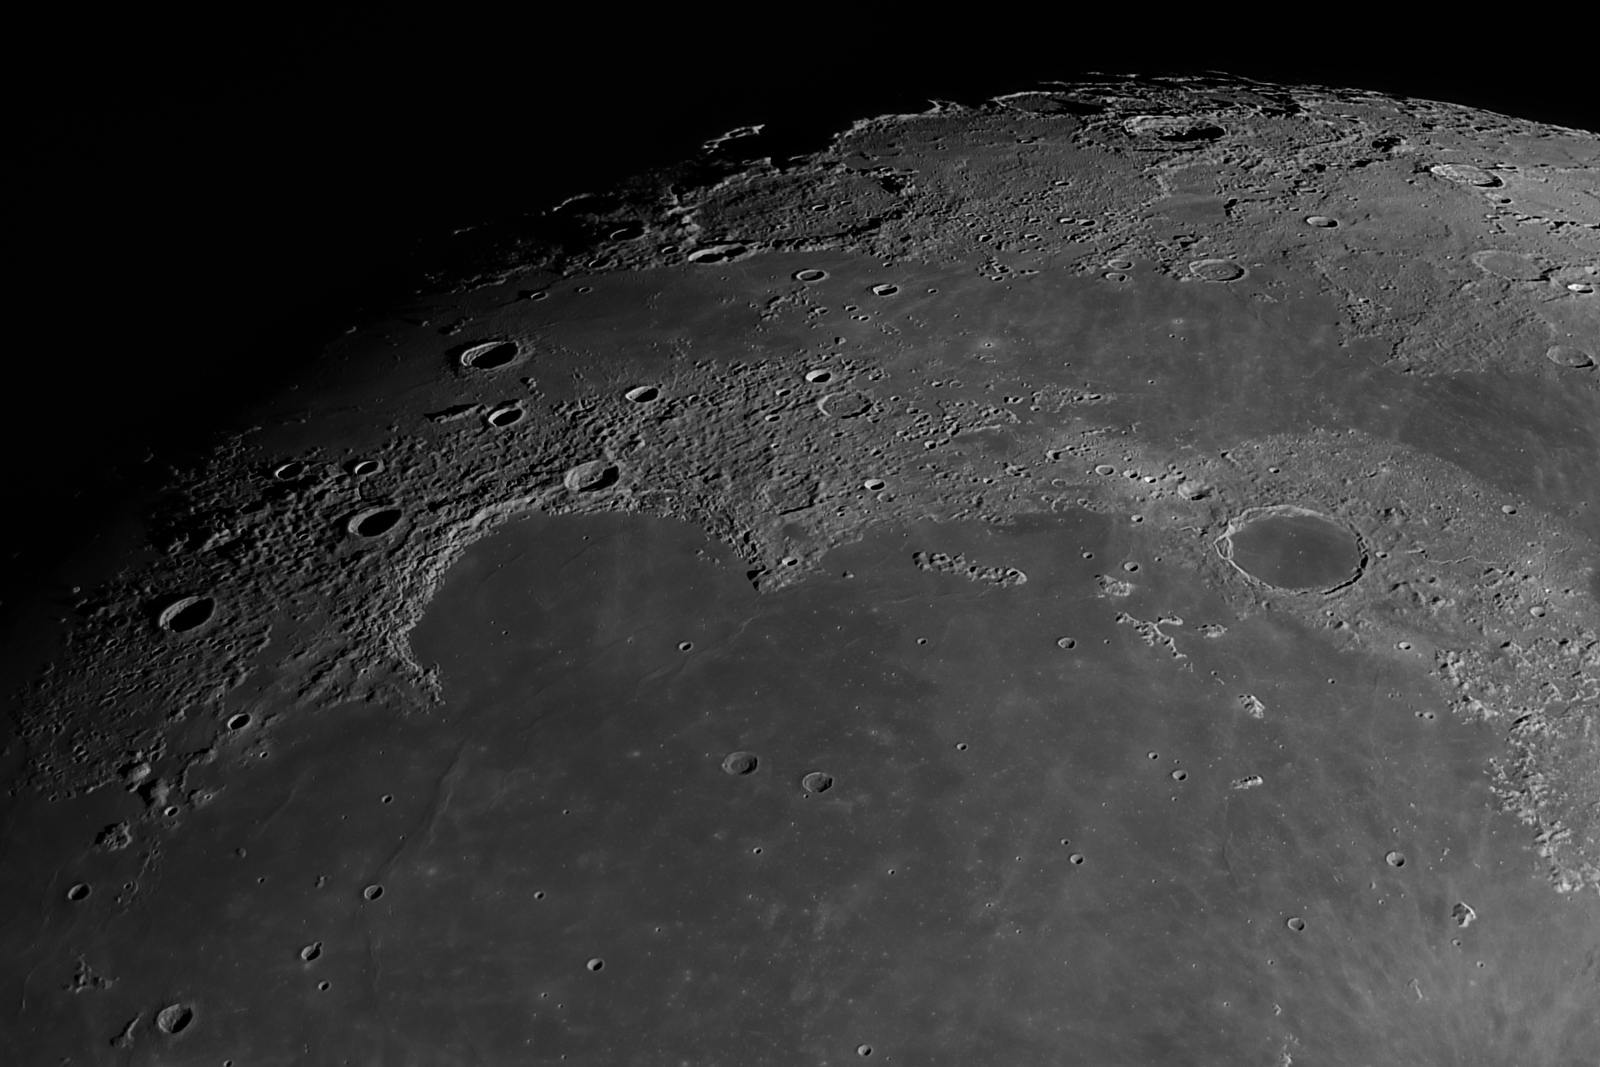 Crater Plato and Sinus Iridum